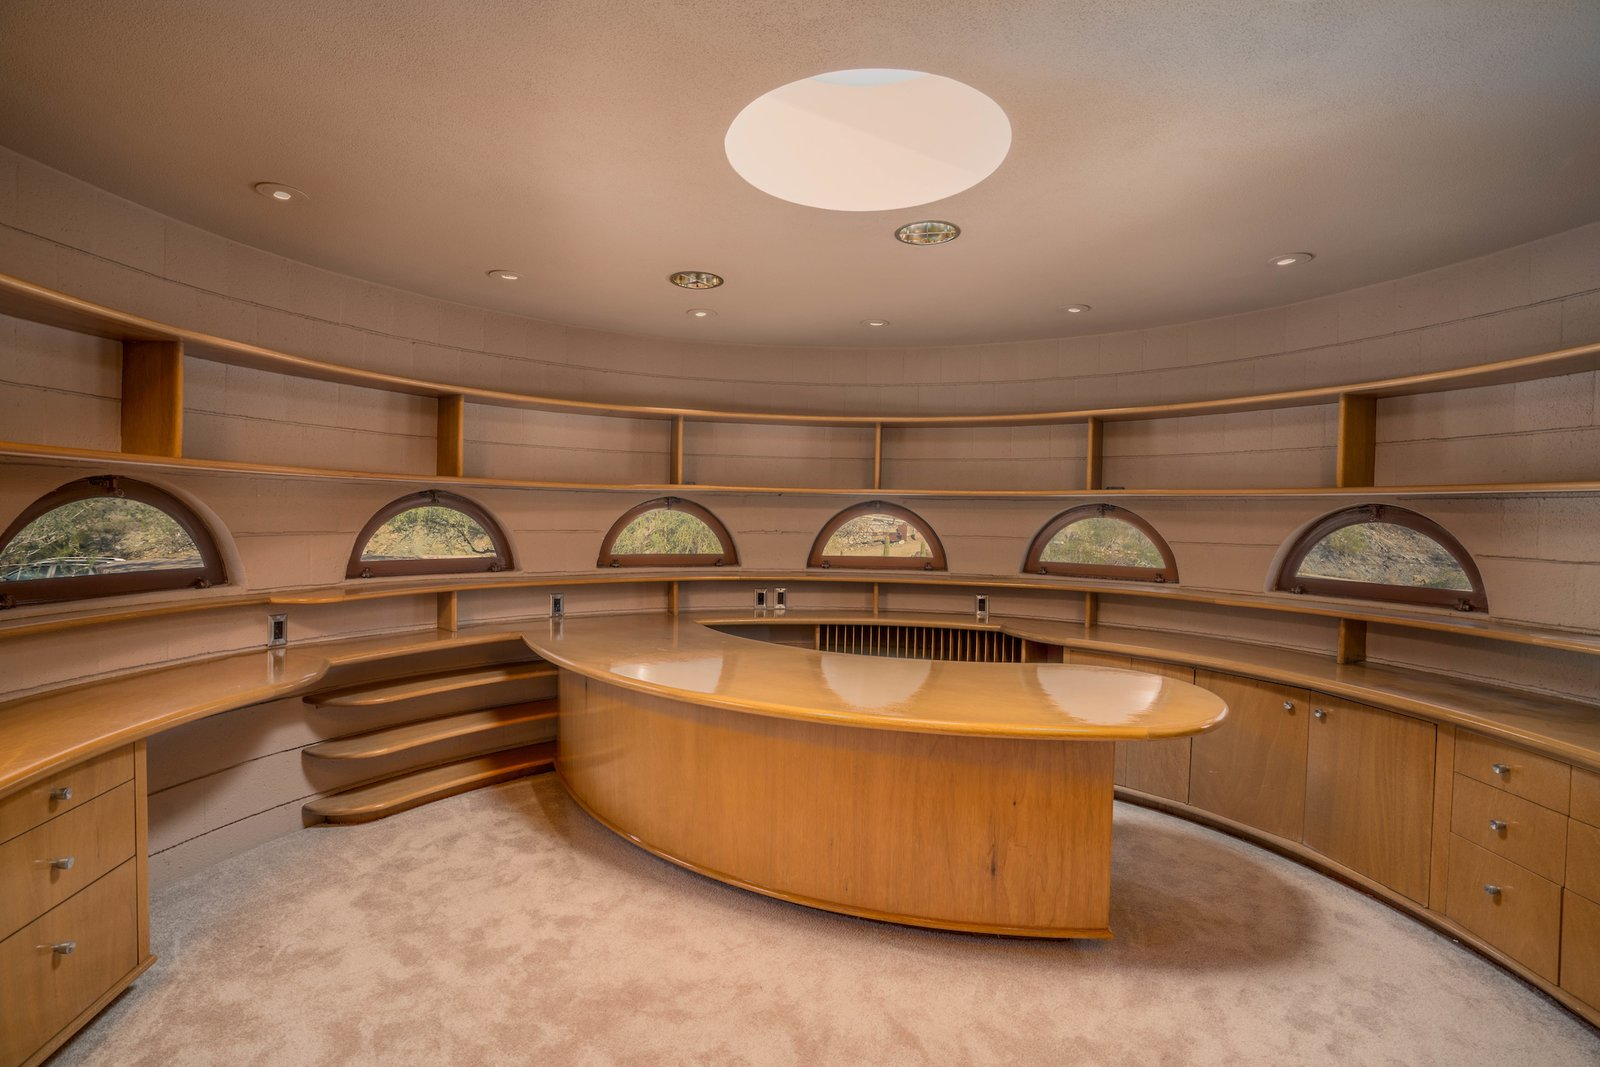 Dining Room, Shelves, Bar, Recessed Lighting, and Storage  Photo 10 of 15 in The Last House Designed by Frank Lloyd Wright Is Being Auctioned Without Reserve